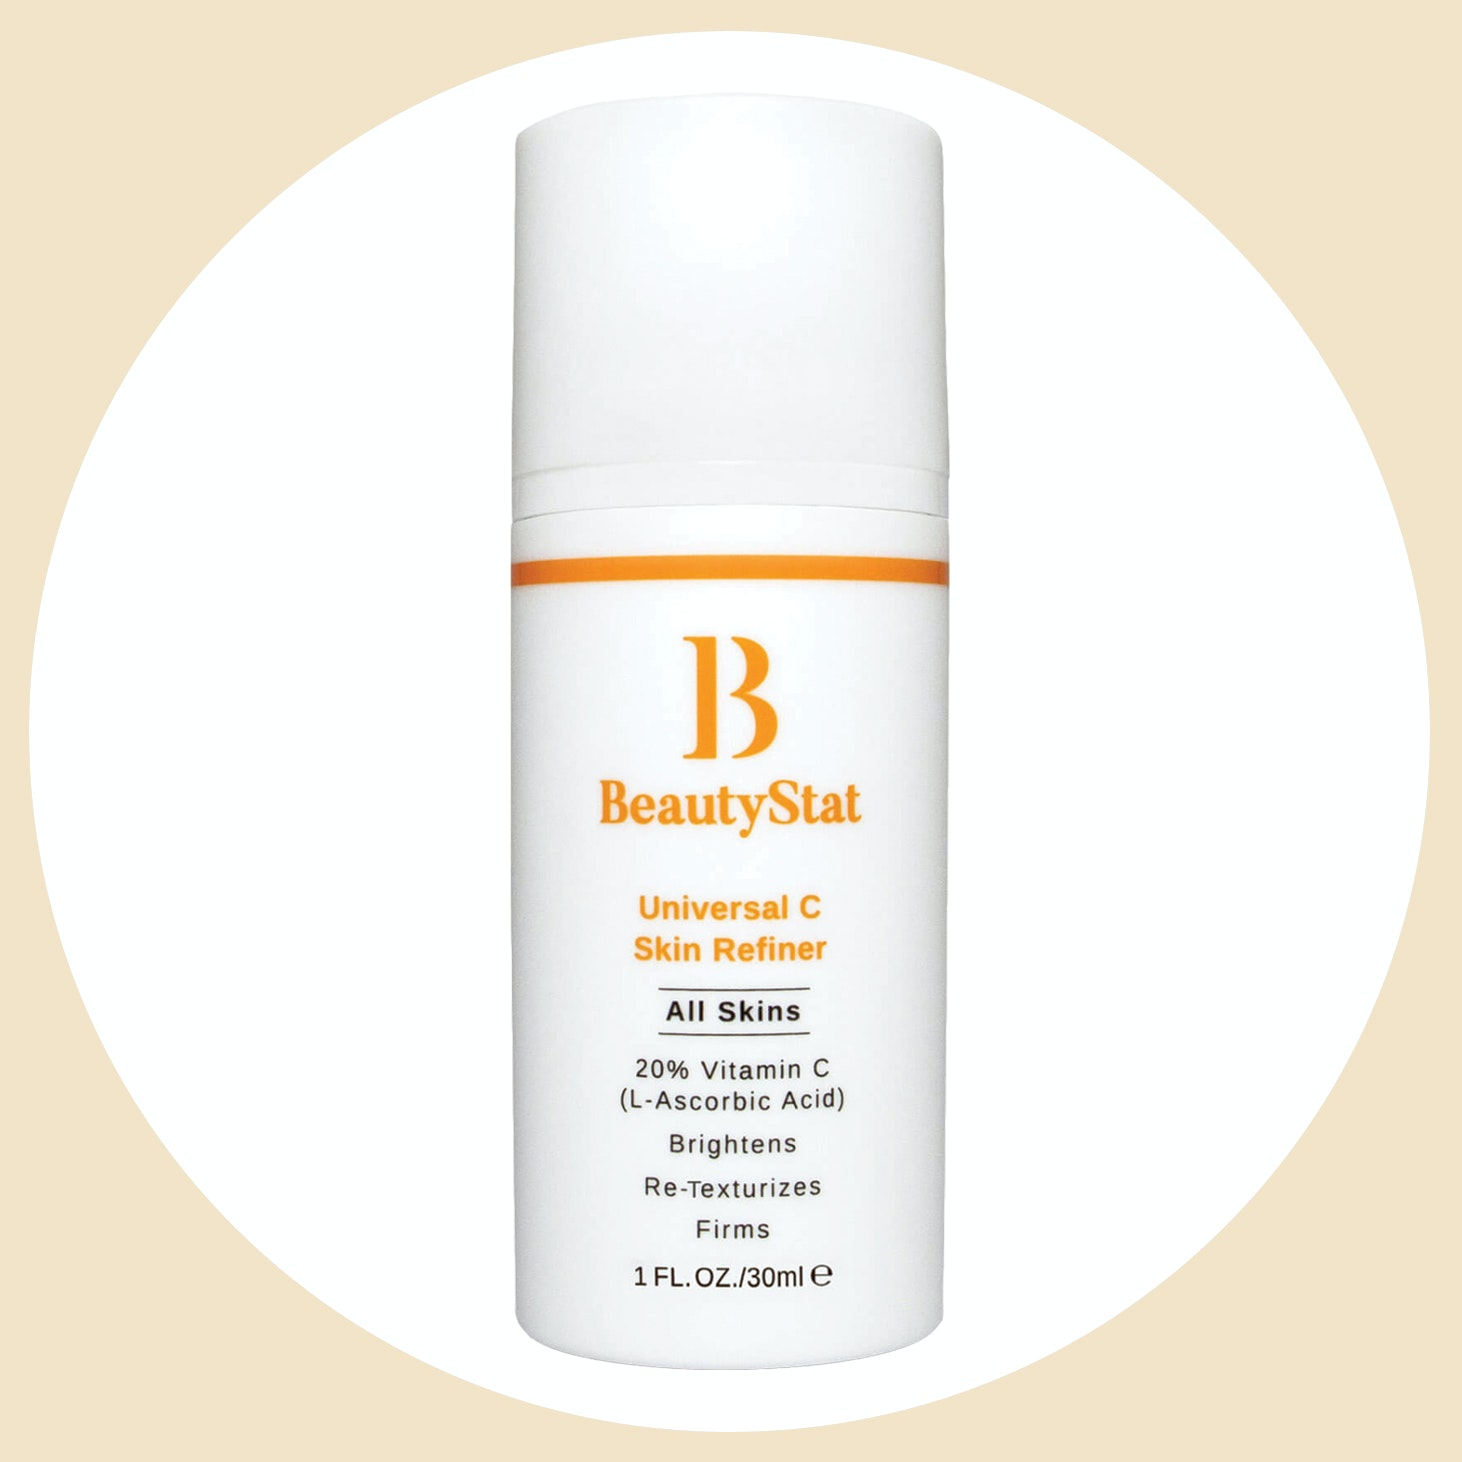 The BeautyStat Universal C Skin Refiner Might Just Be The Next Cult Classic Vitamin C Product